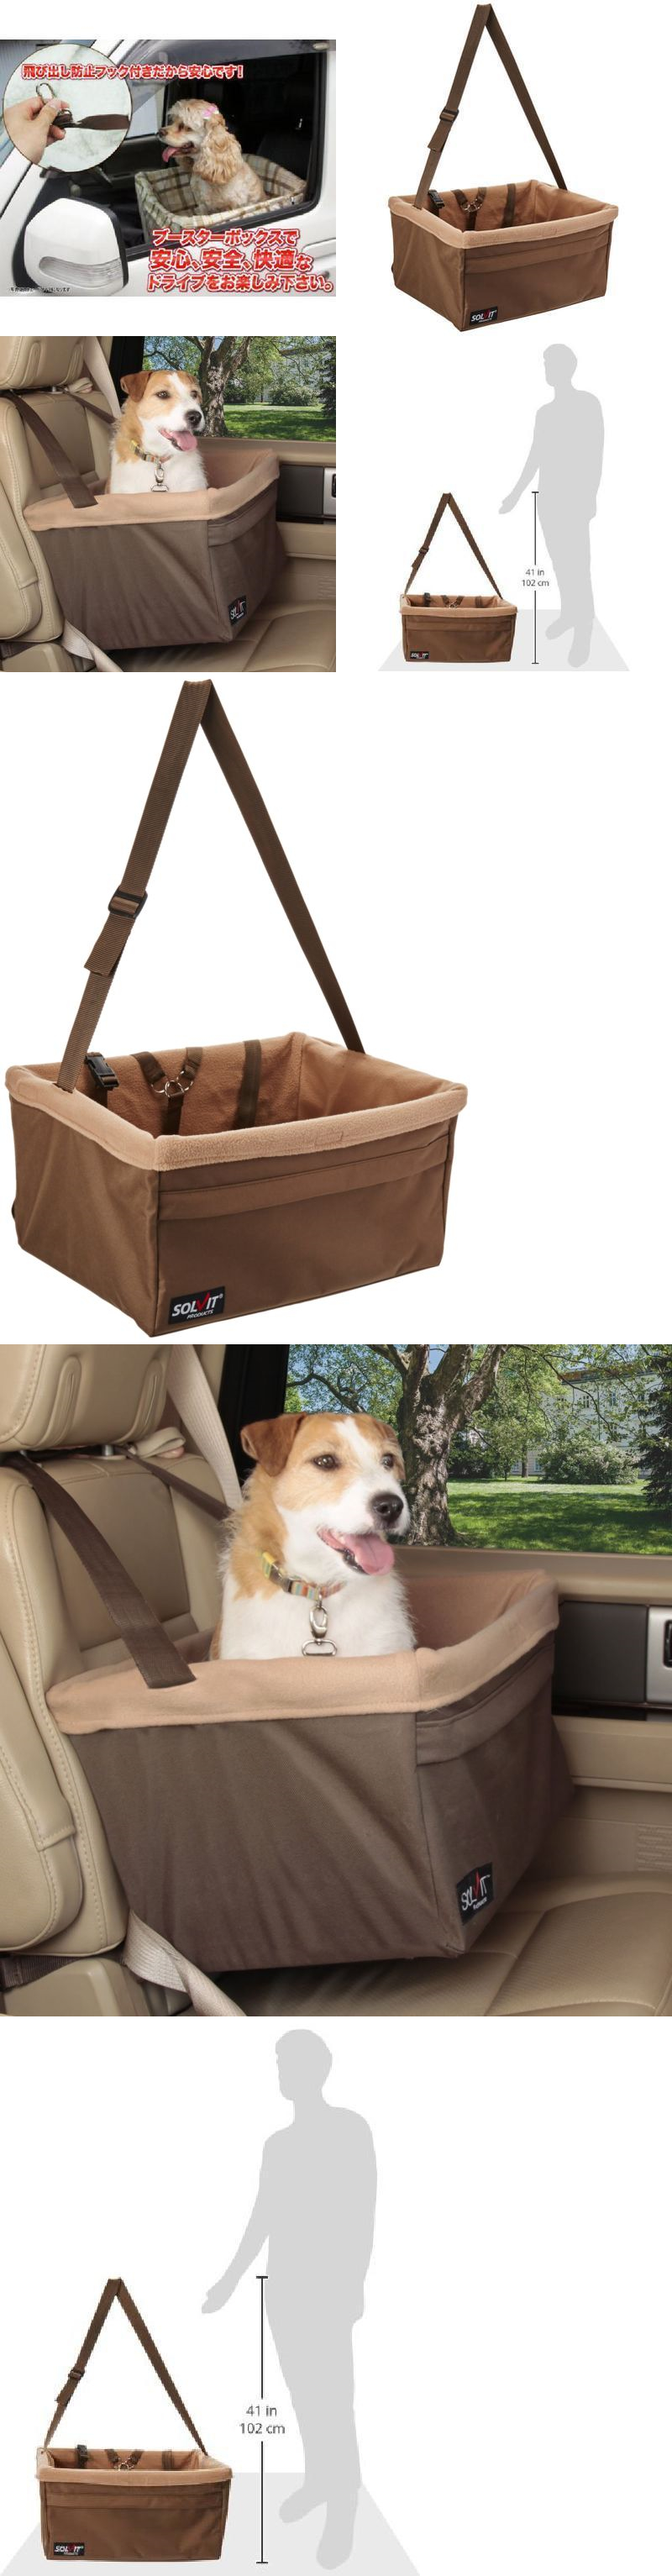 Car seats and barriers booster safety washable liner carrier